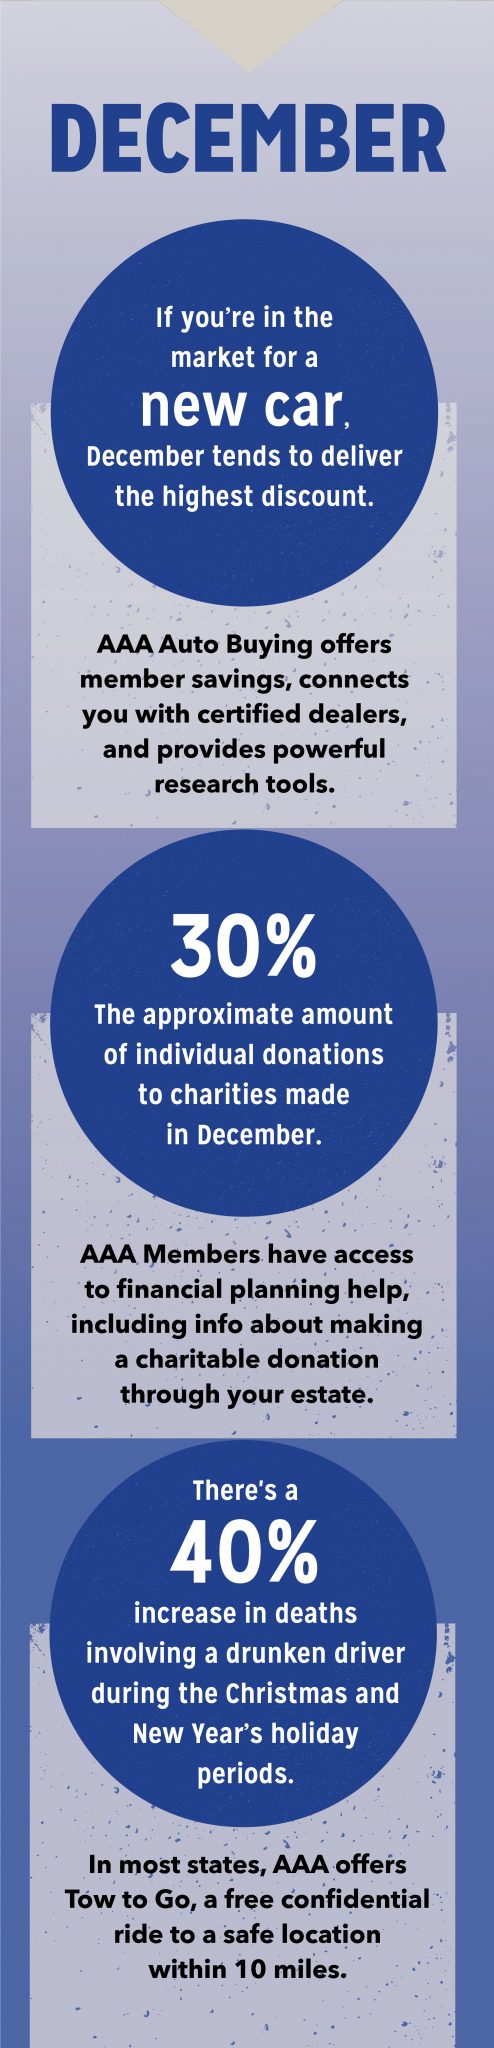 aaa-membership-benefits-december-mobile